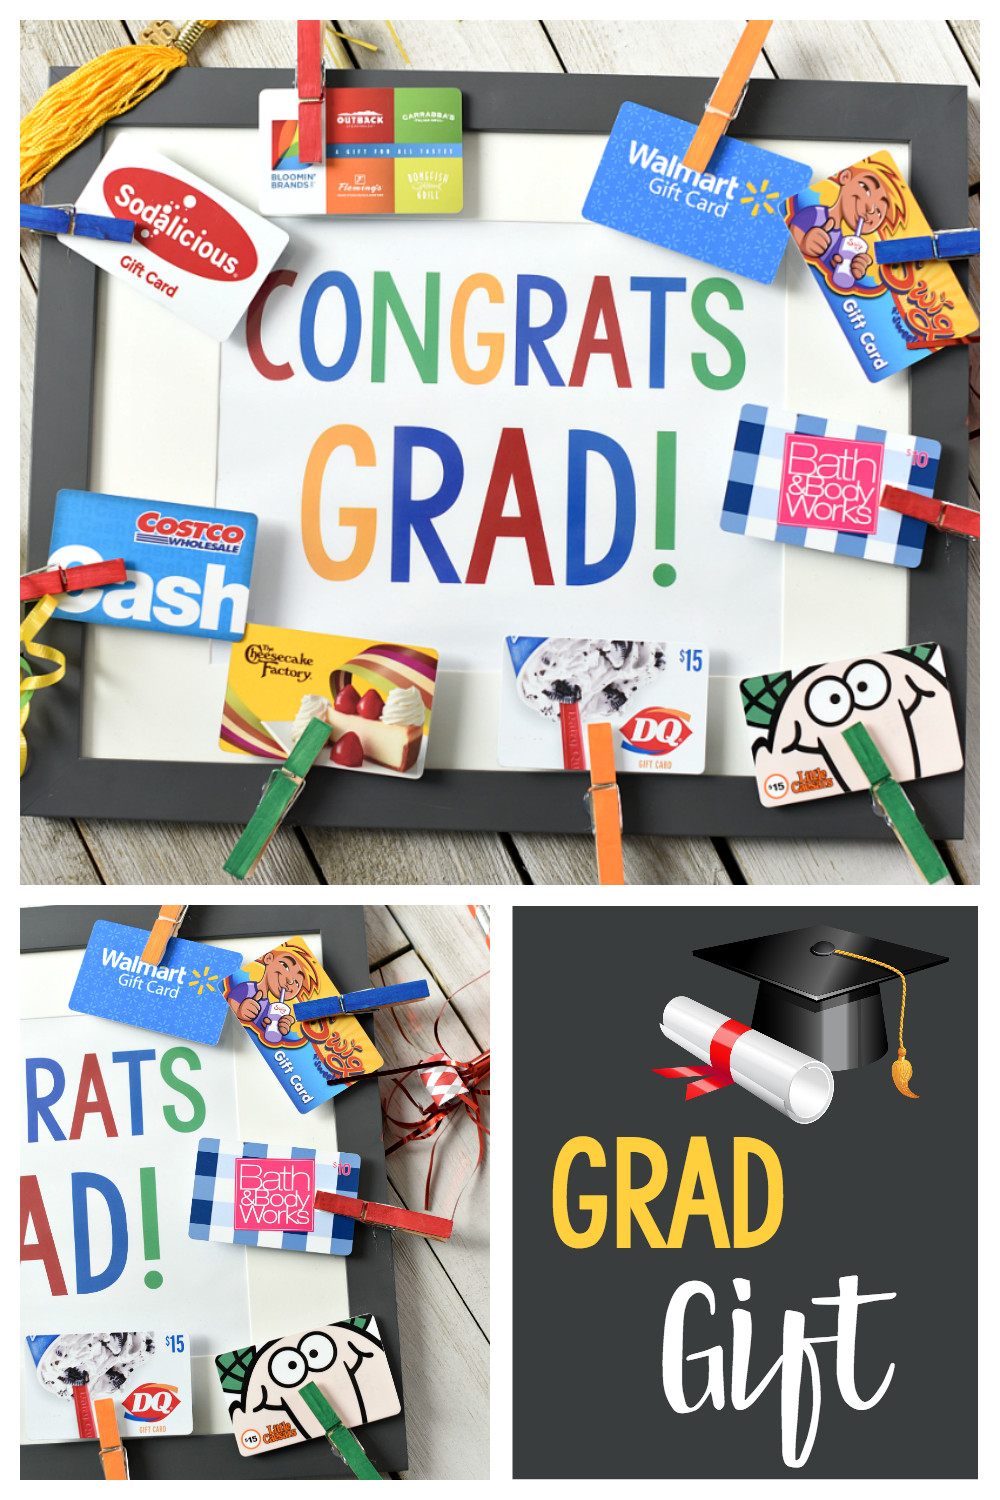 Graduation Jewelry Gift Ideas For Her  Cute Graduation Gifts Congrats Grad Gift Card Frame – Fun